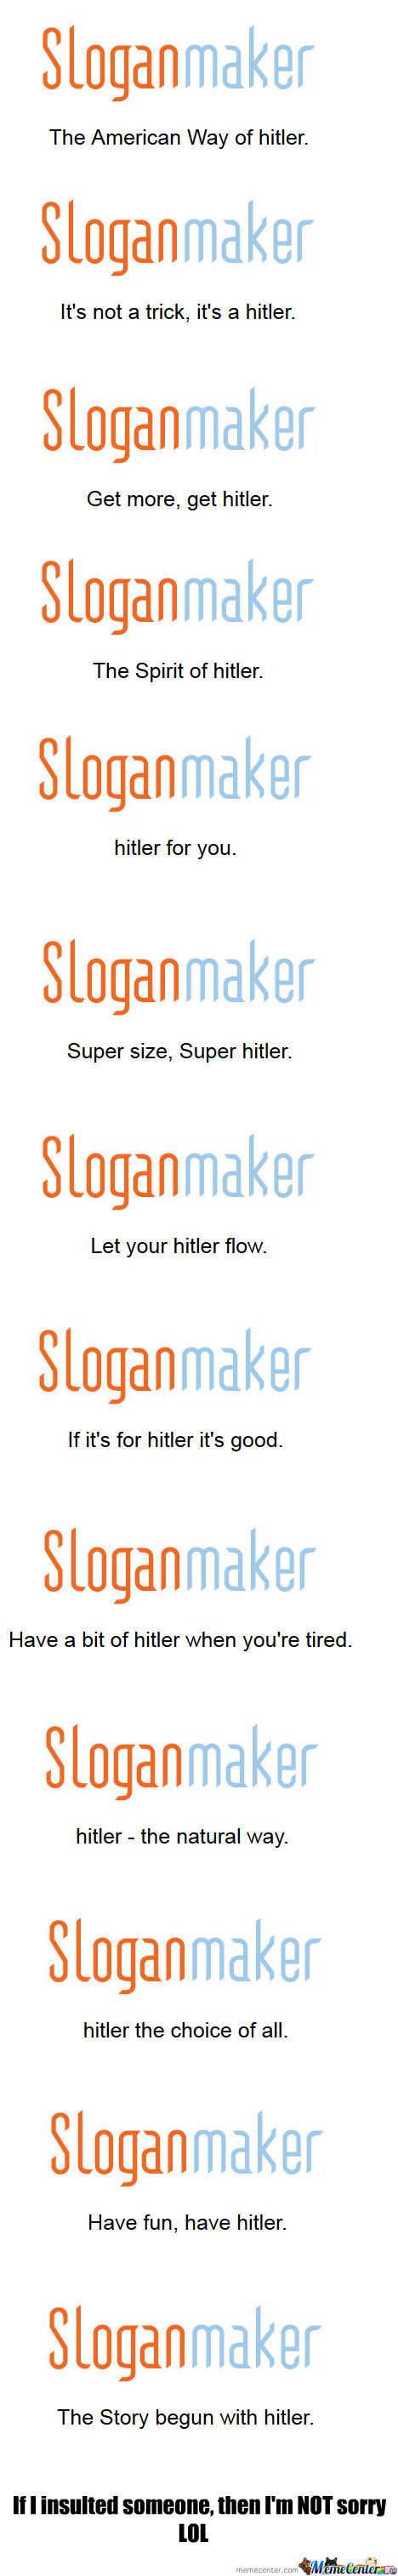 Sloganmaker Really Loves Hitler